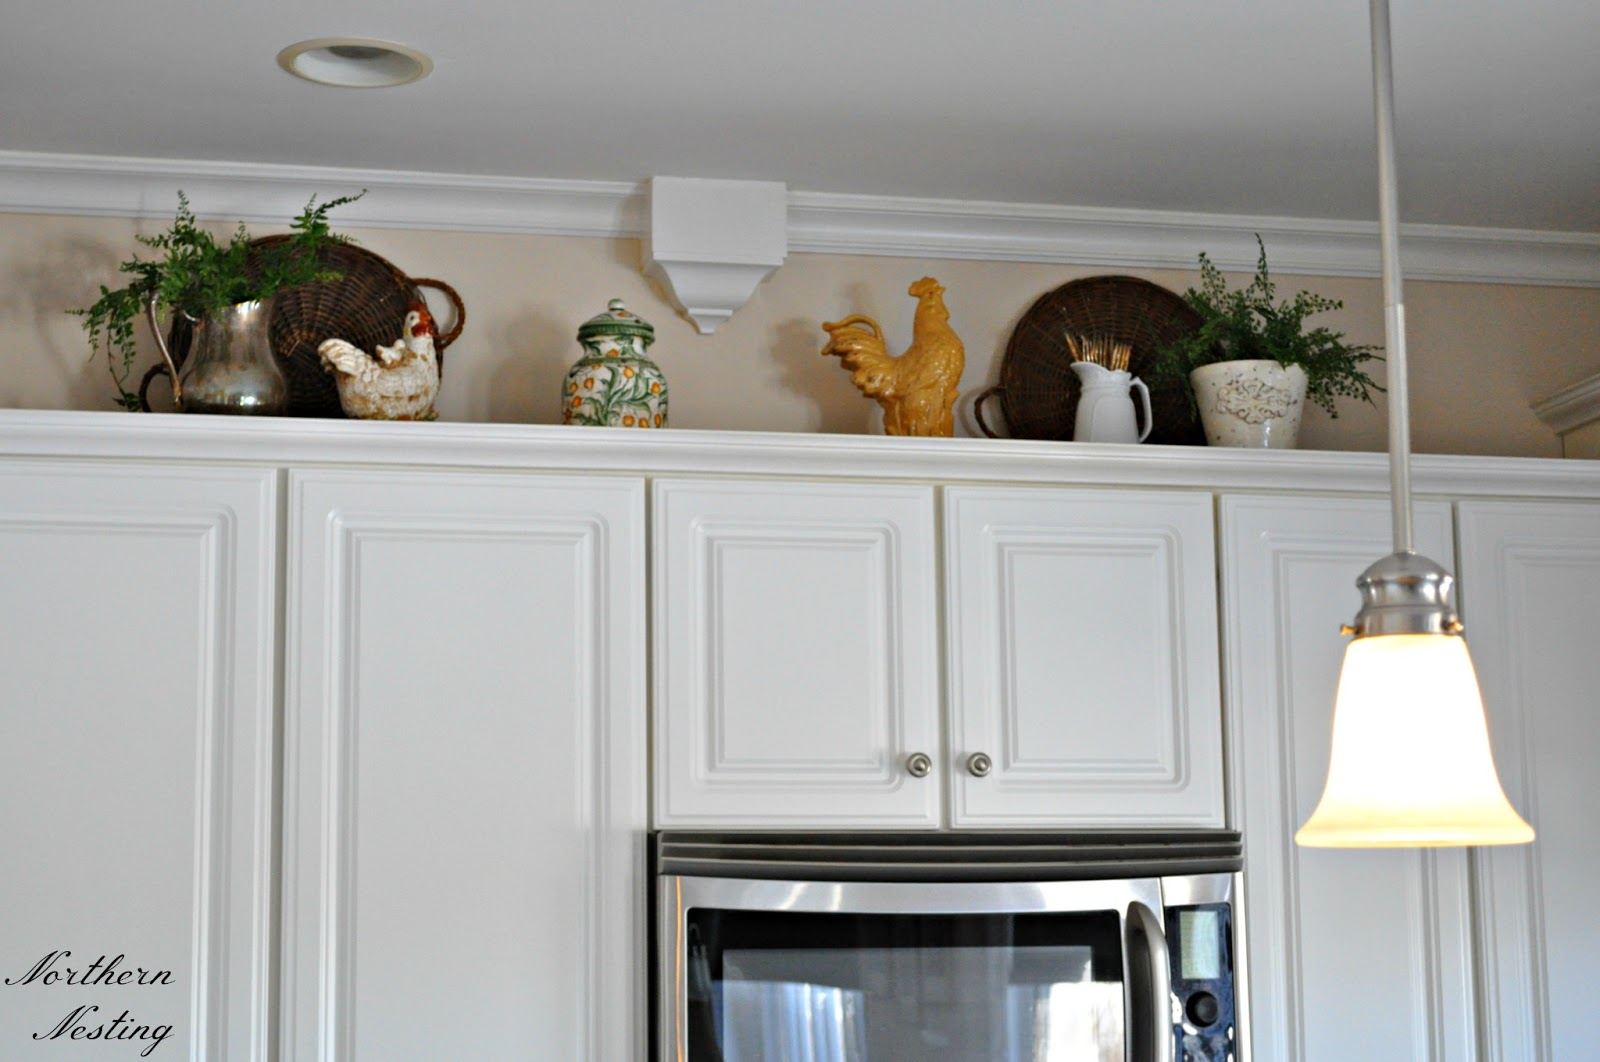 northern nesting a new look above the kitchen cabinets